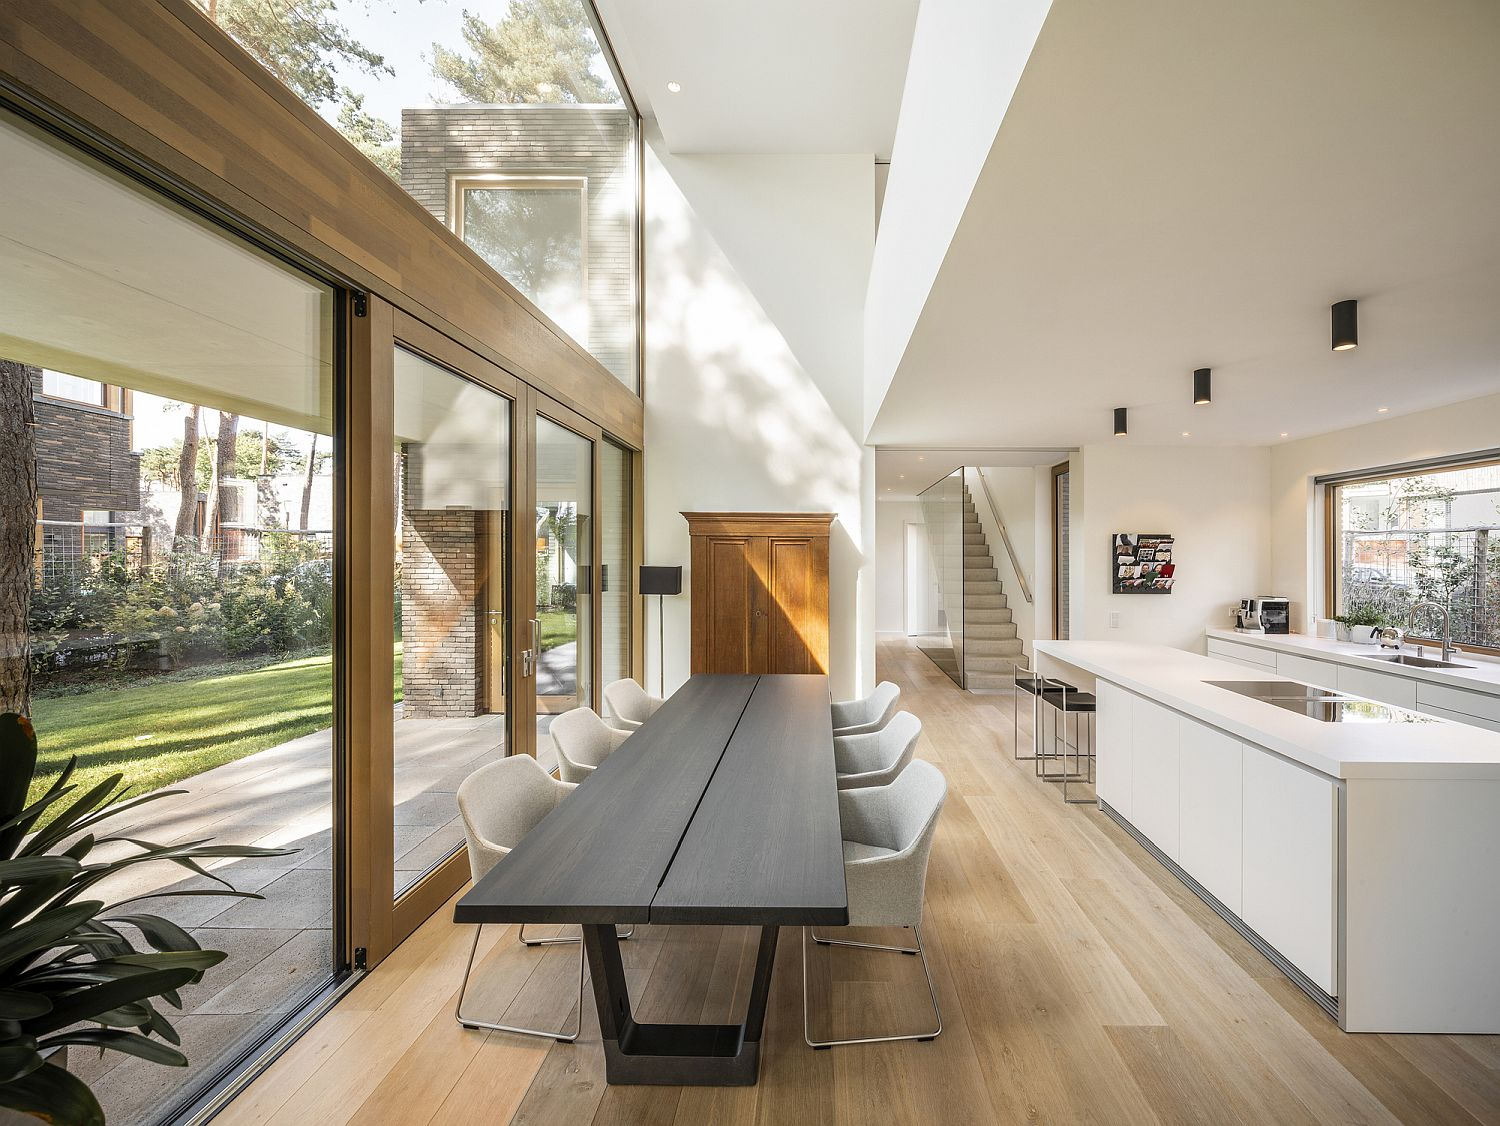 Open plan kitchen and dining with a skylight above that brings in ample ventilation